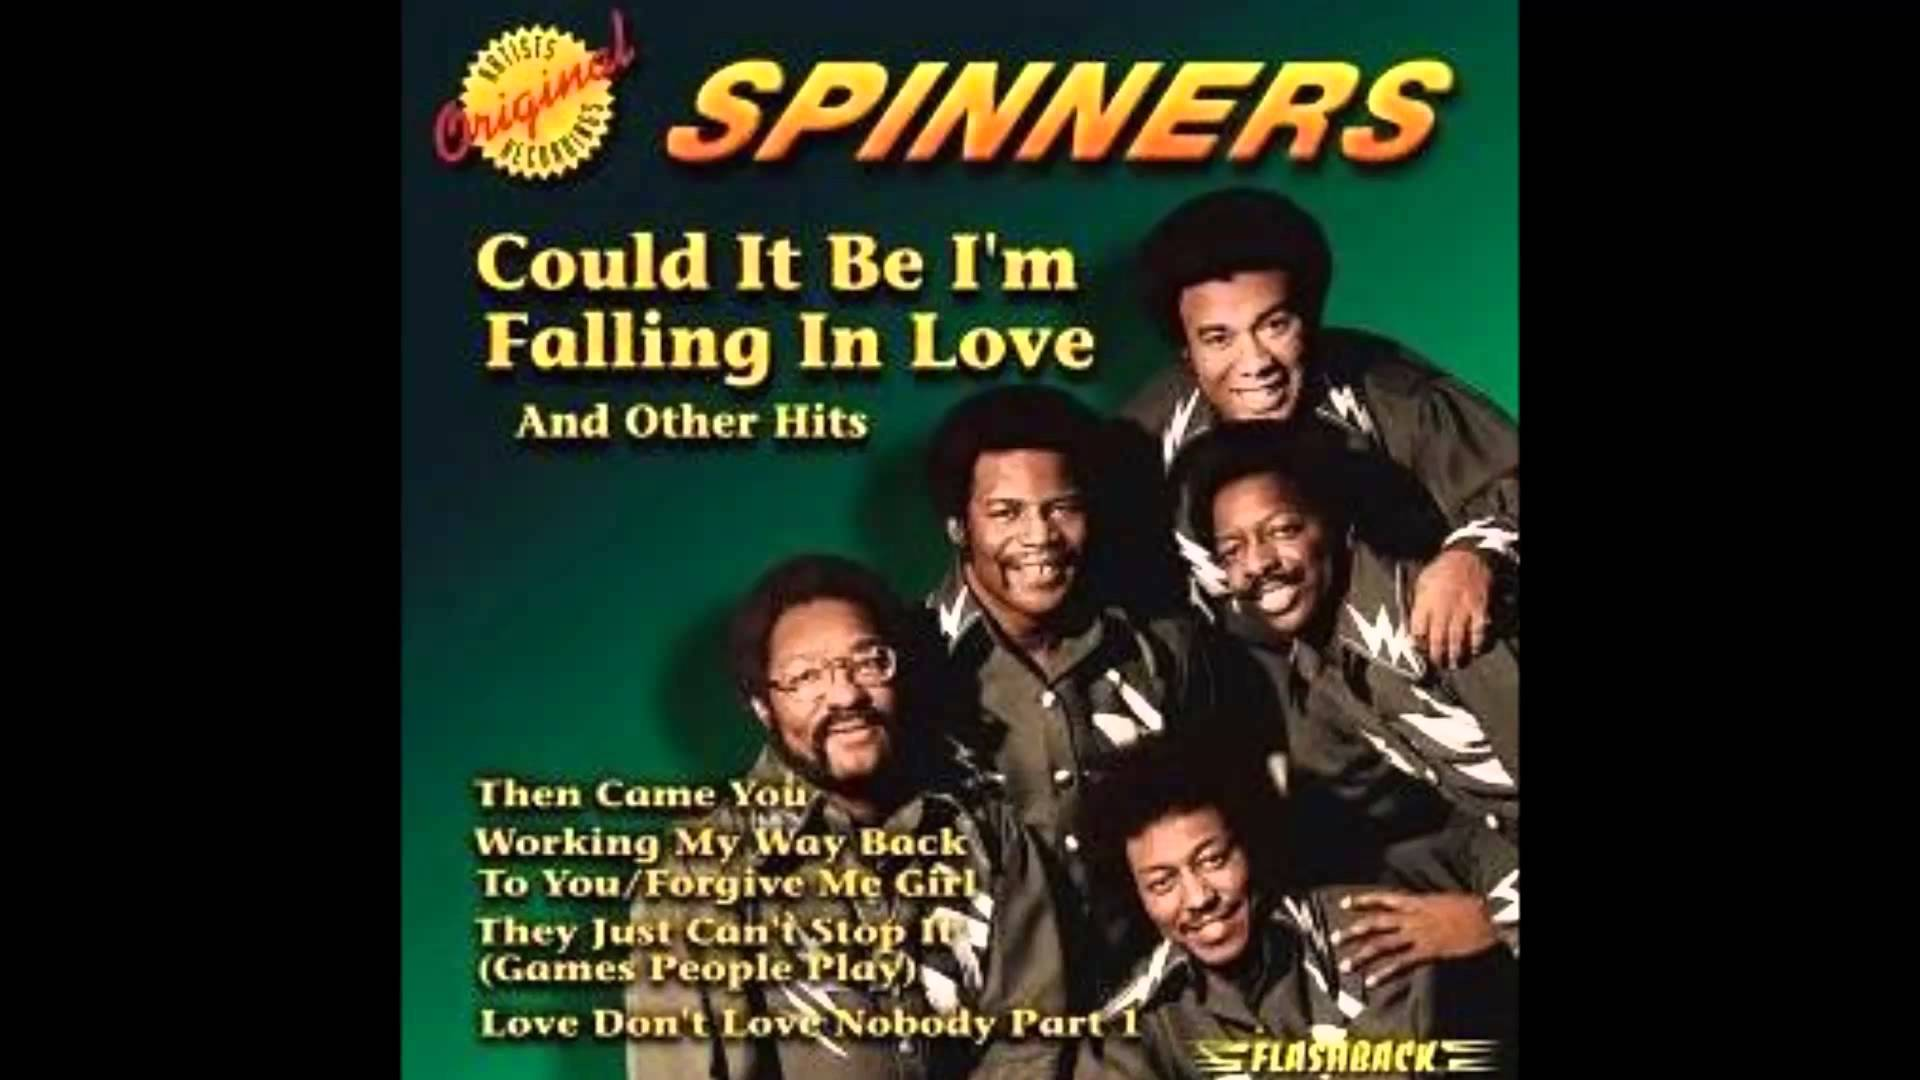 The Spinners_Could_It_Be_I'm_Falling_In_Love